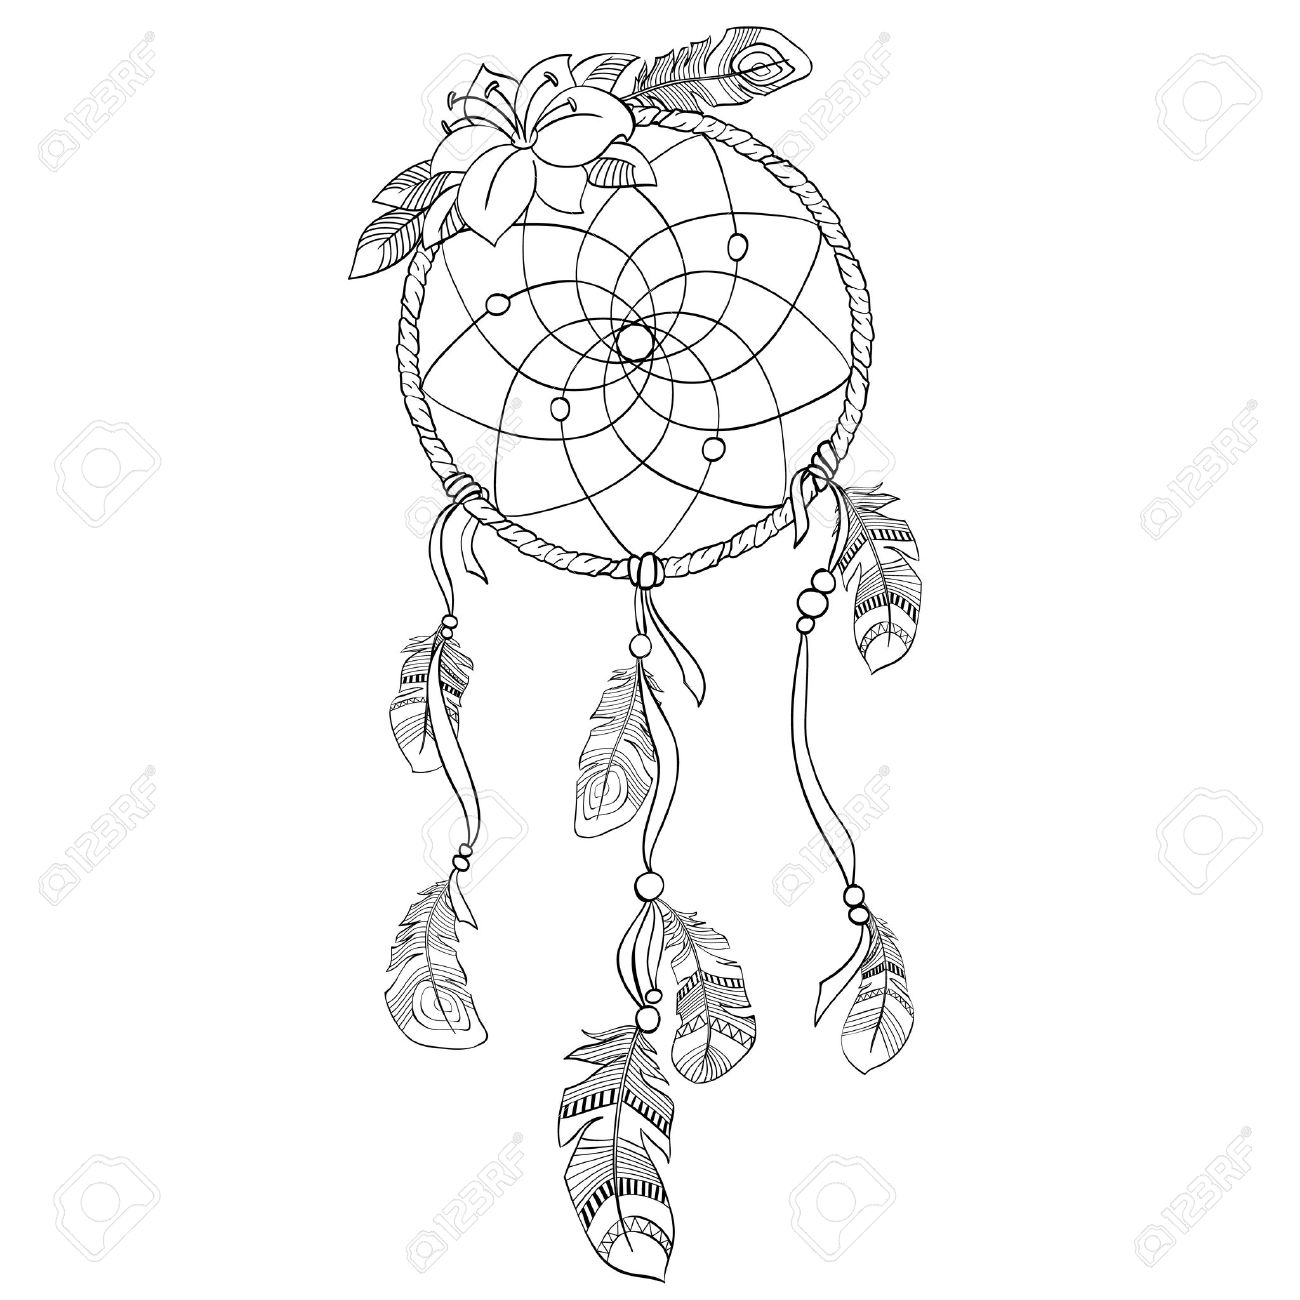 dreamcatcher vector illustration royalty free cliparts vectors and rh 123rf com dream catcher vector art free dream catcher victor idaho